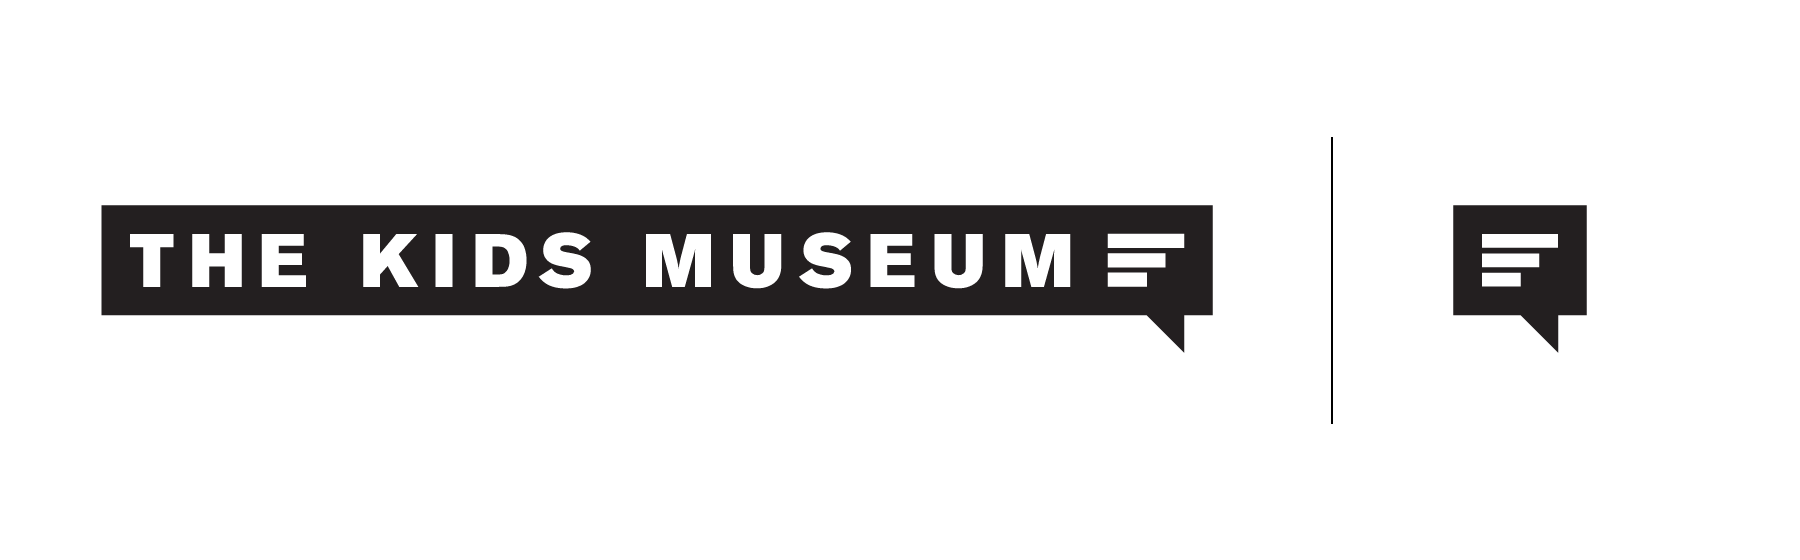 The logo was created with growth and communication in mind. The bars cascading upwards are growing in size, demonstrating the concept ofgrowth, while its container, a speech box, is a metaphor for the communication that takes place inside the museum.